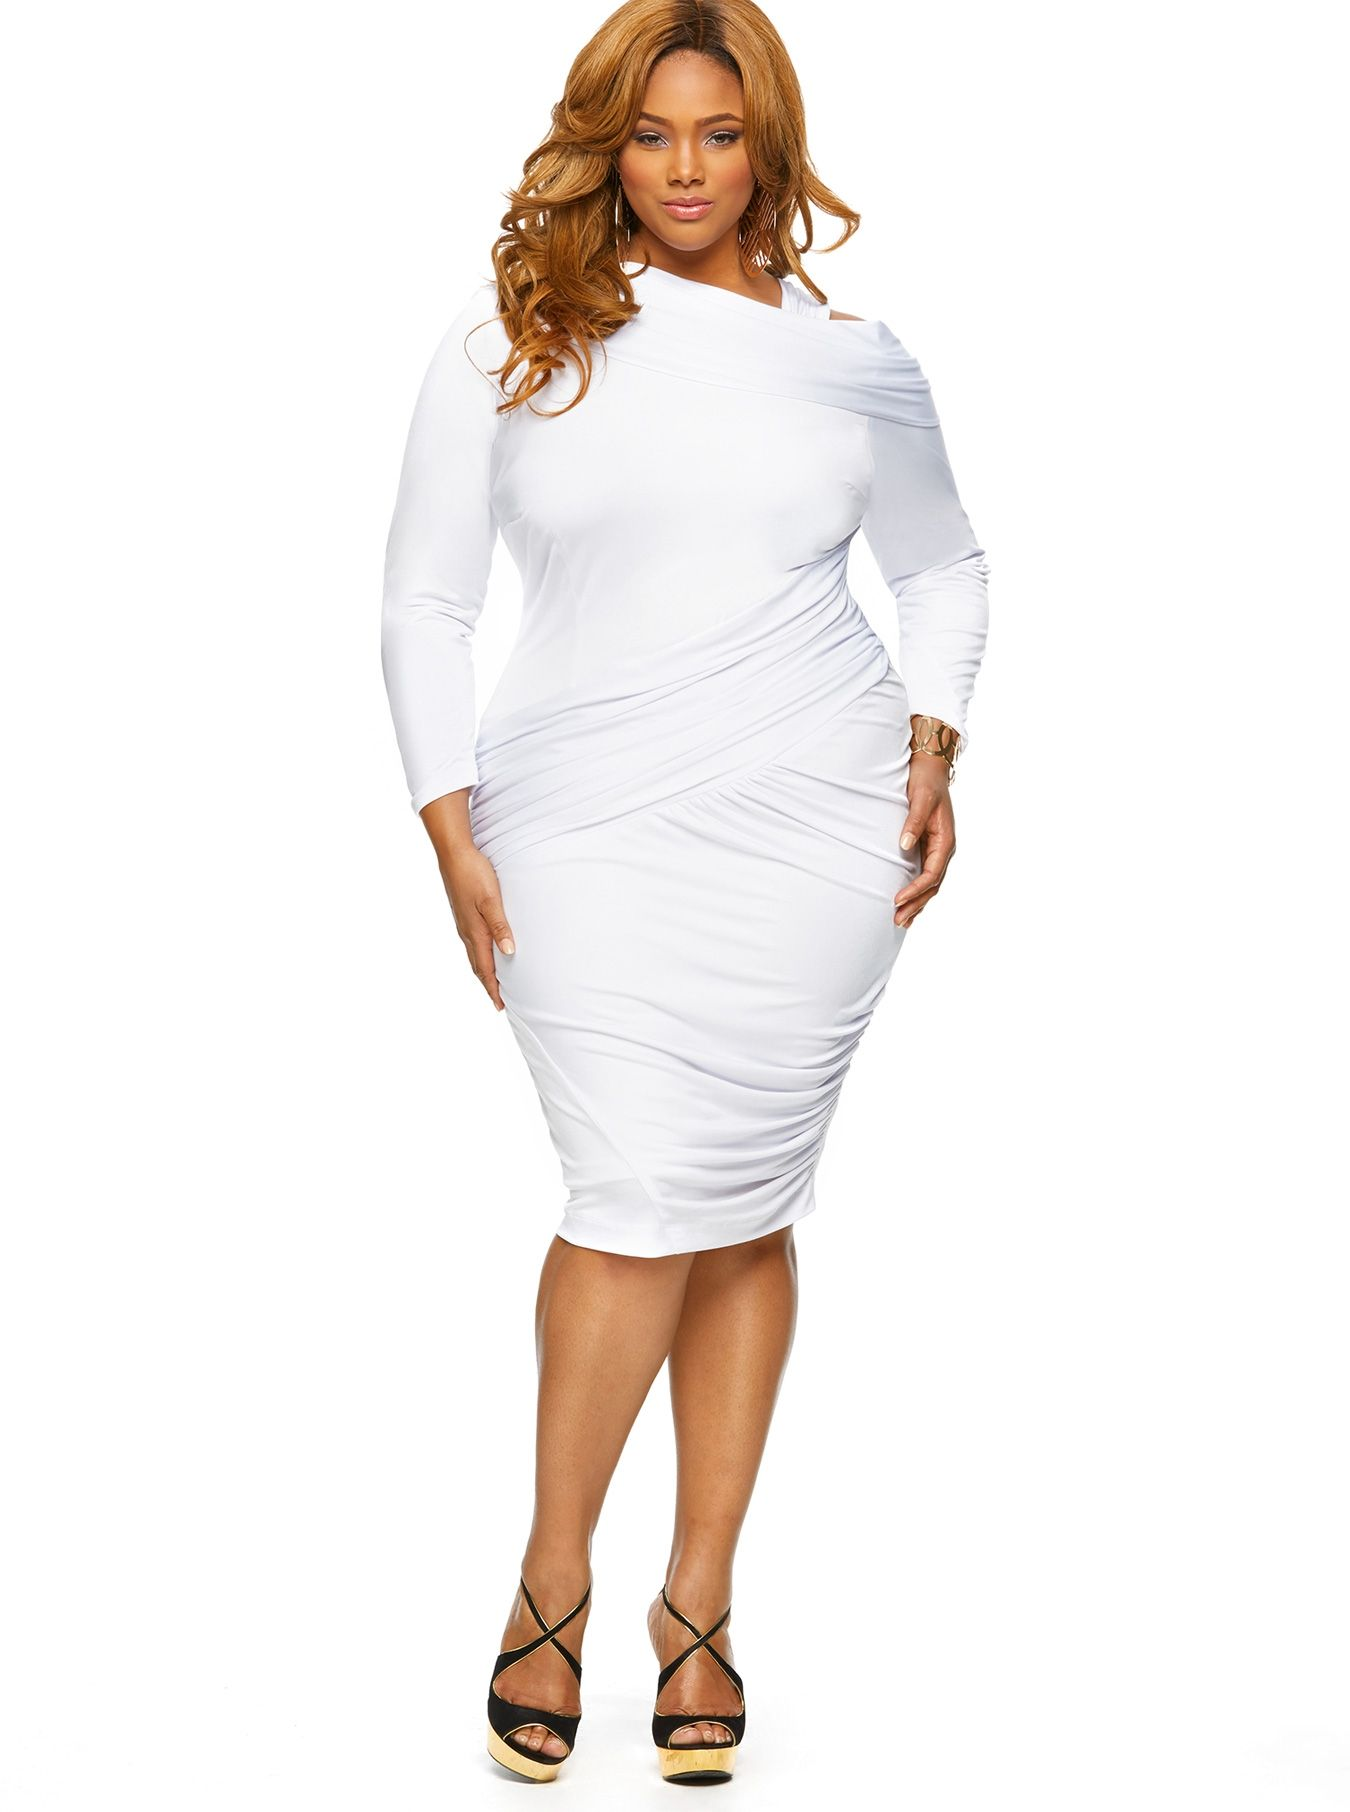 2019 year for women- Dresses White plus size juniors pictures